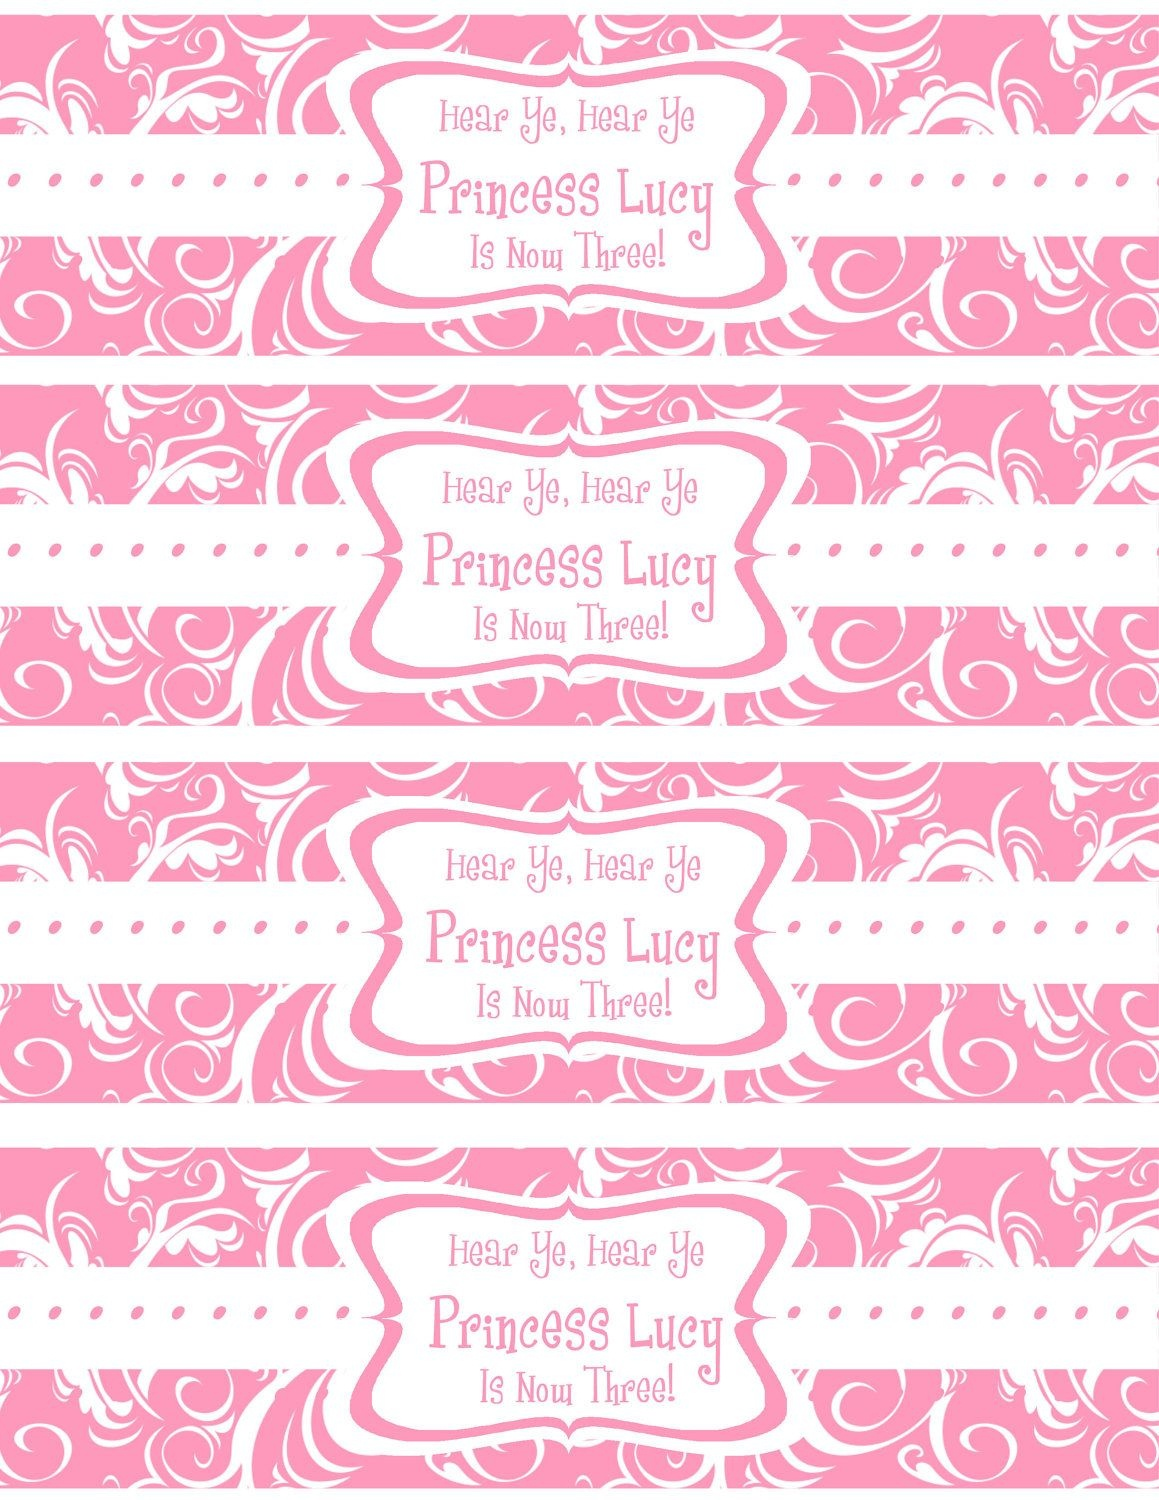 Free Printable Water Bottle Labels Template   Kreatief   Water - Free Printable Water Bottle Label Template